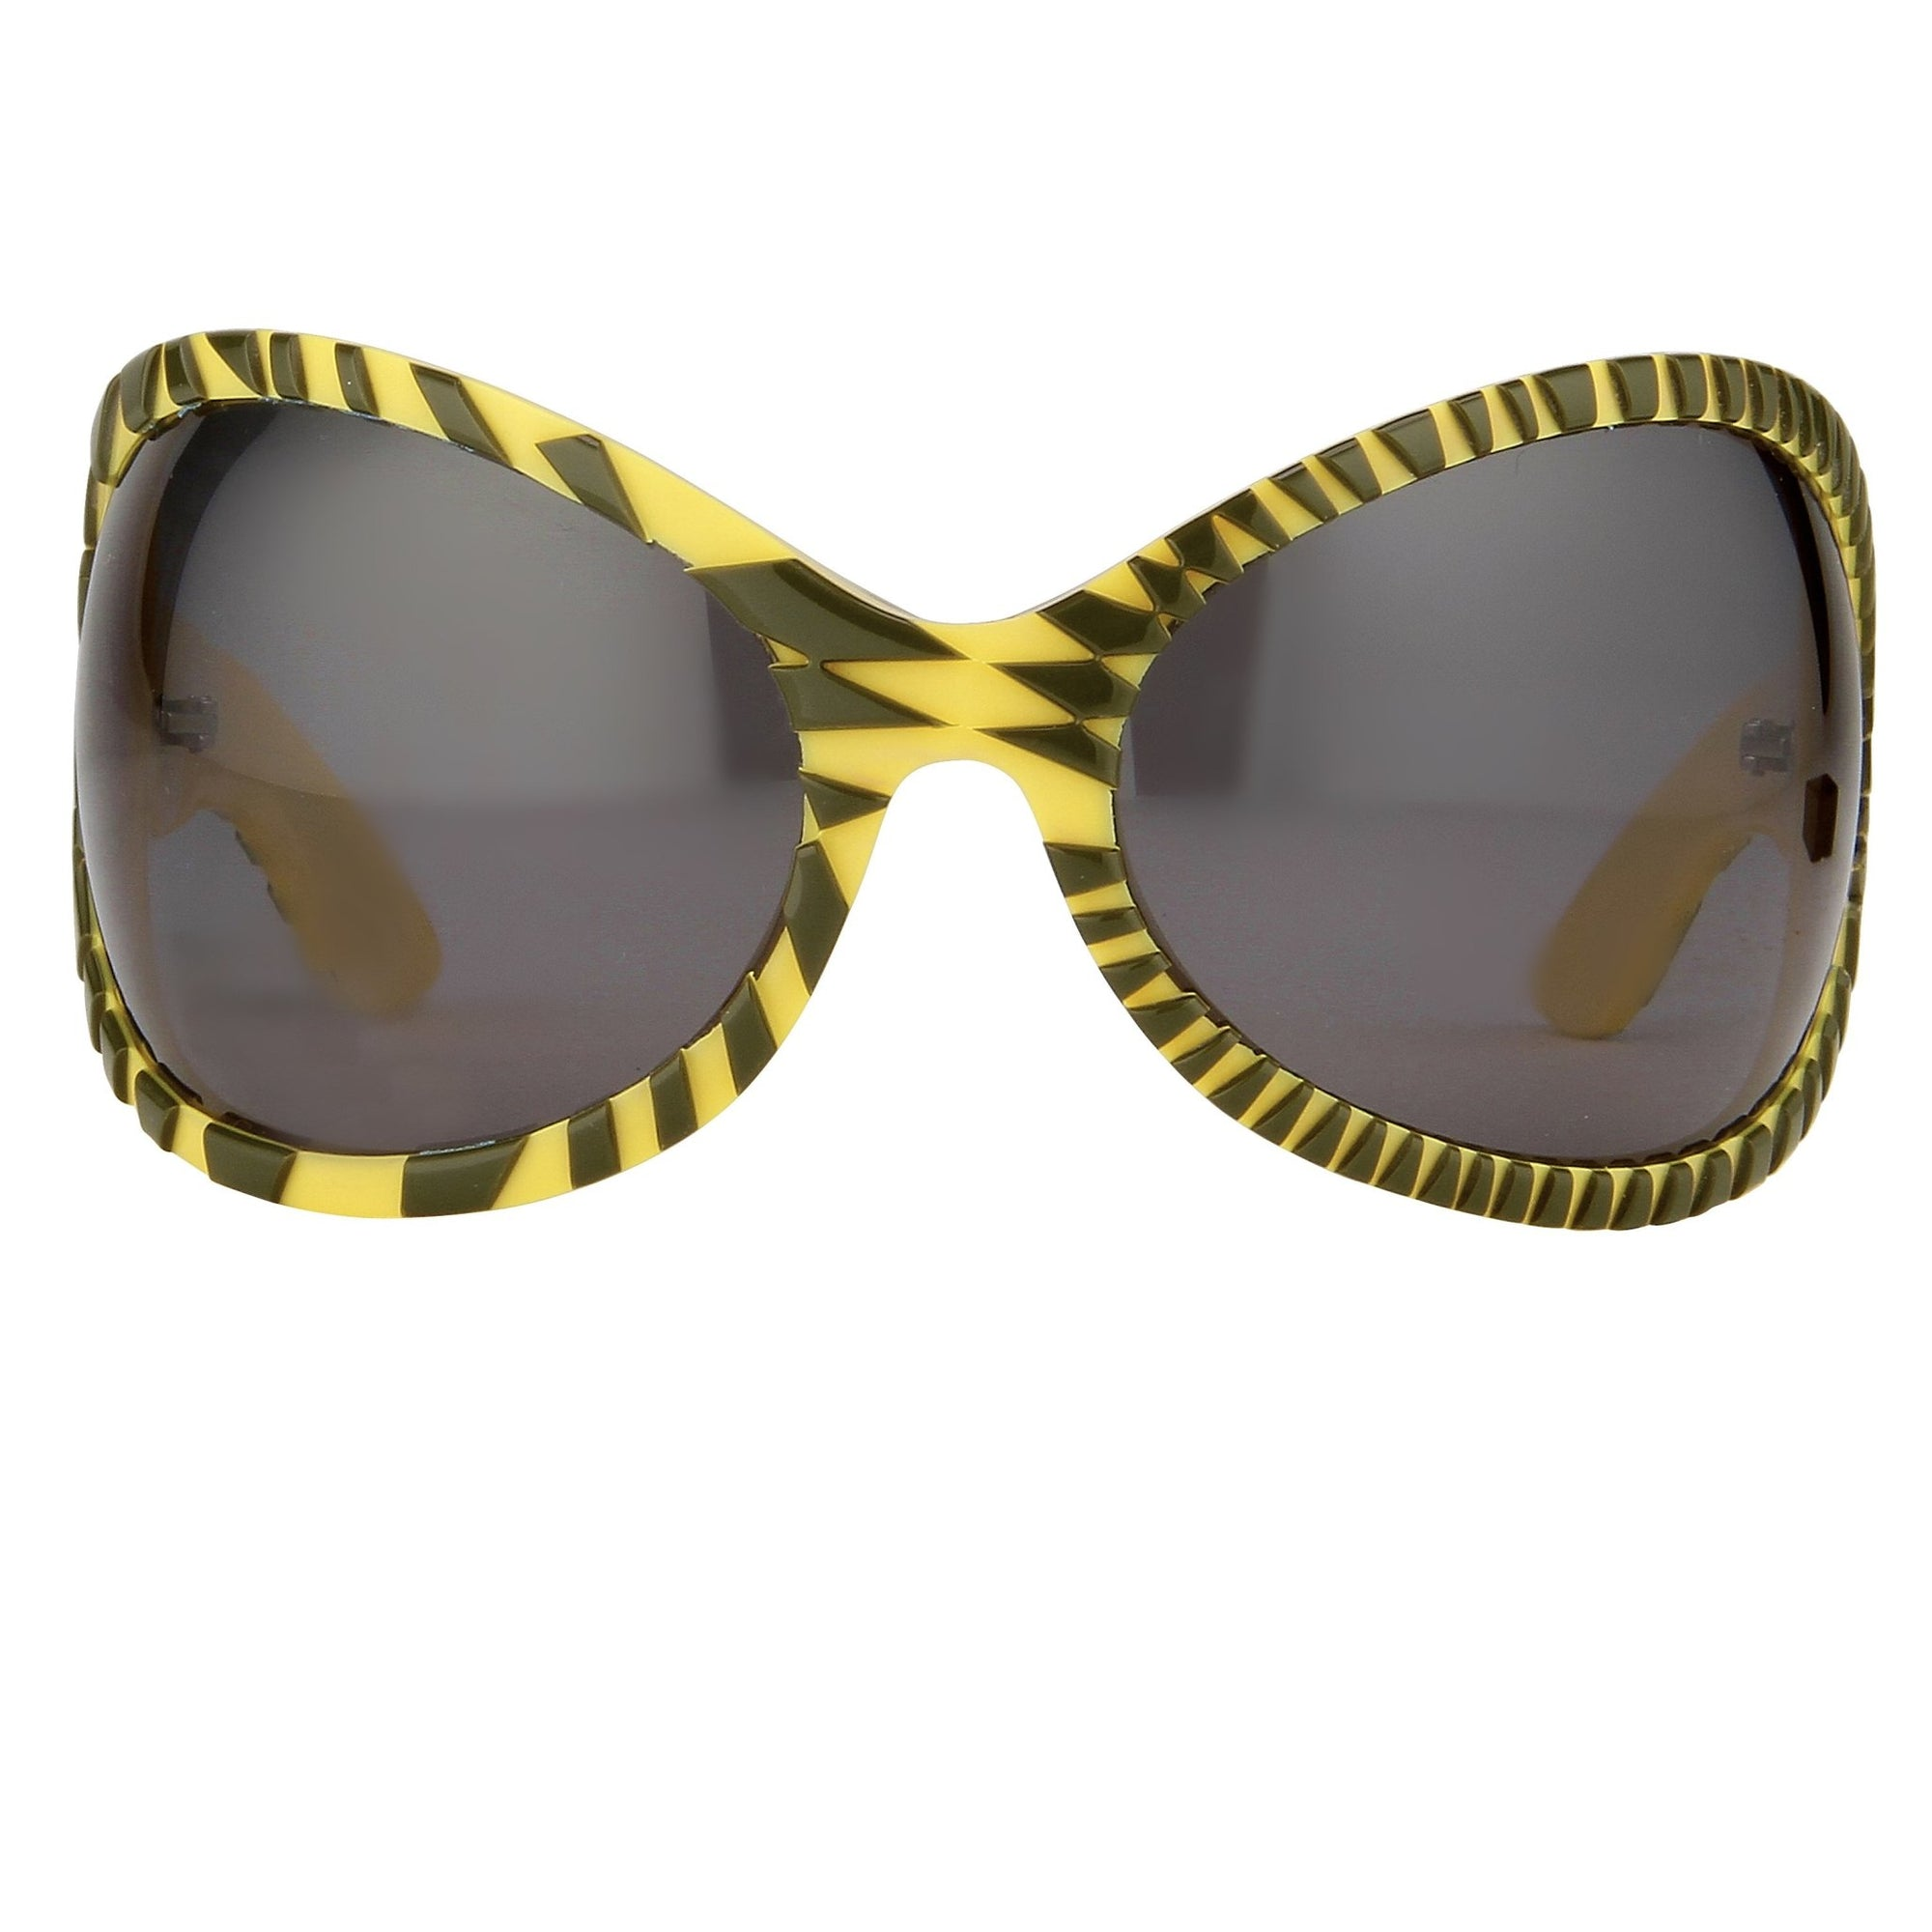 Jeremy Scott Sunglasses Wrap Around Black Yellow Pattern With Grey Category 3 Lenses JSWRAPC4SUN - Watches & Crystals